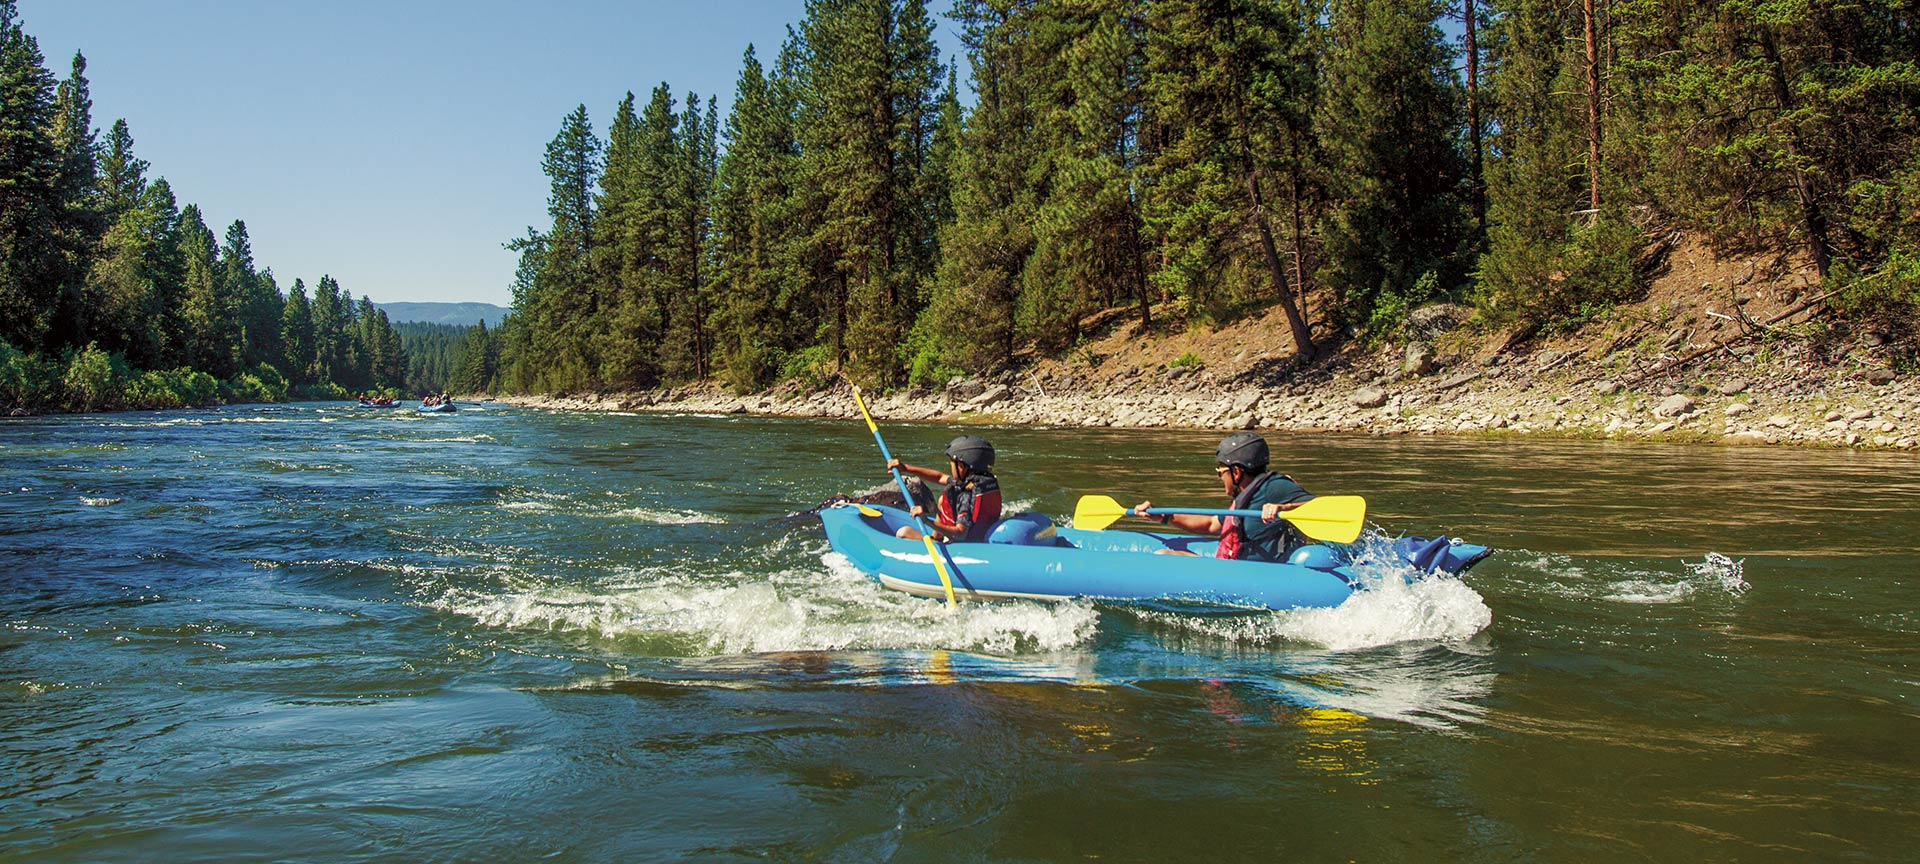 Rafting on the Blackfoot River.